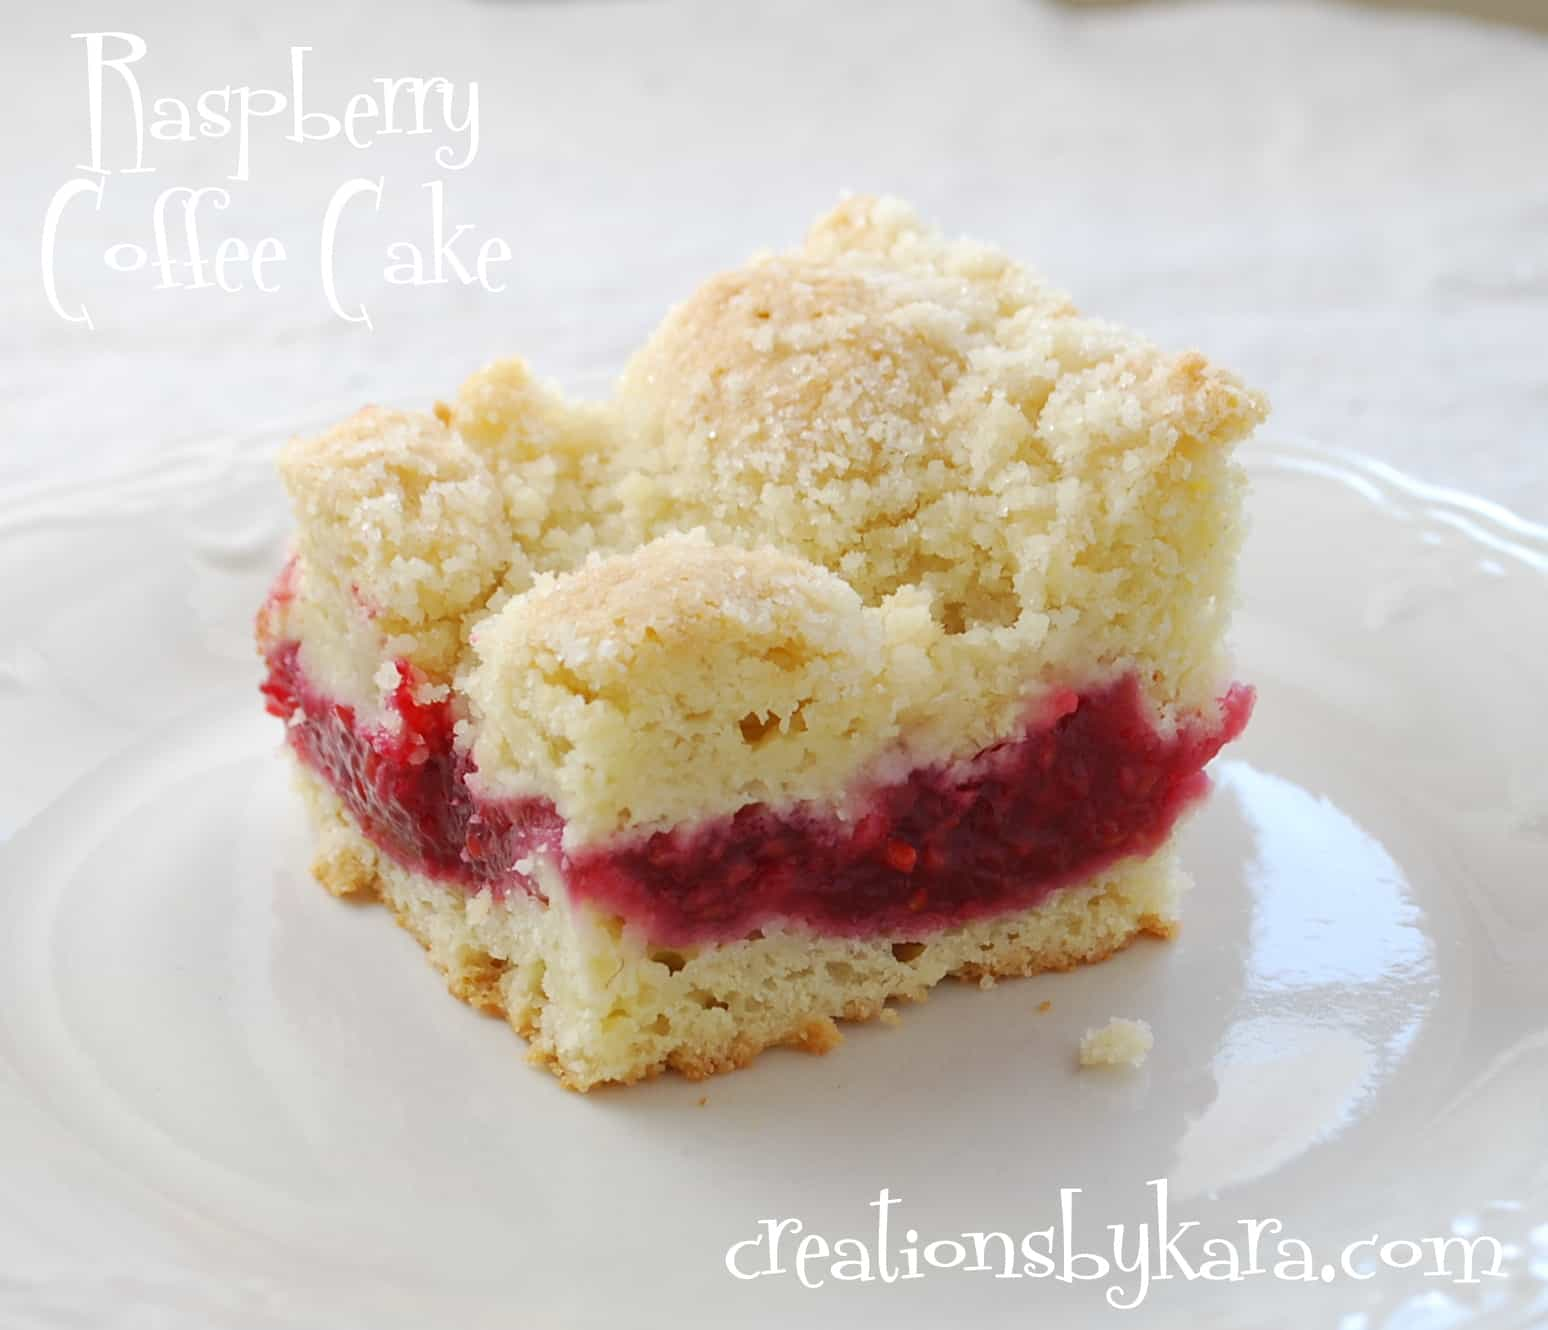 recipe-raspberry-coffee-cake